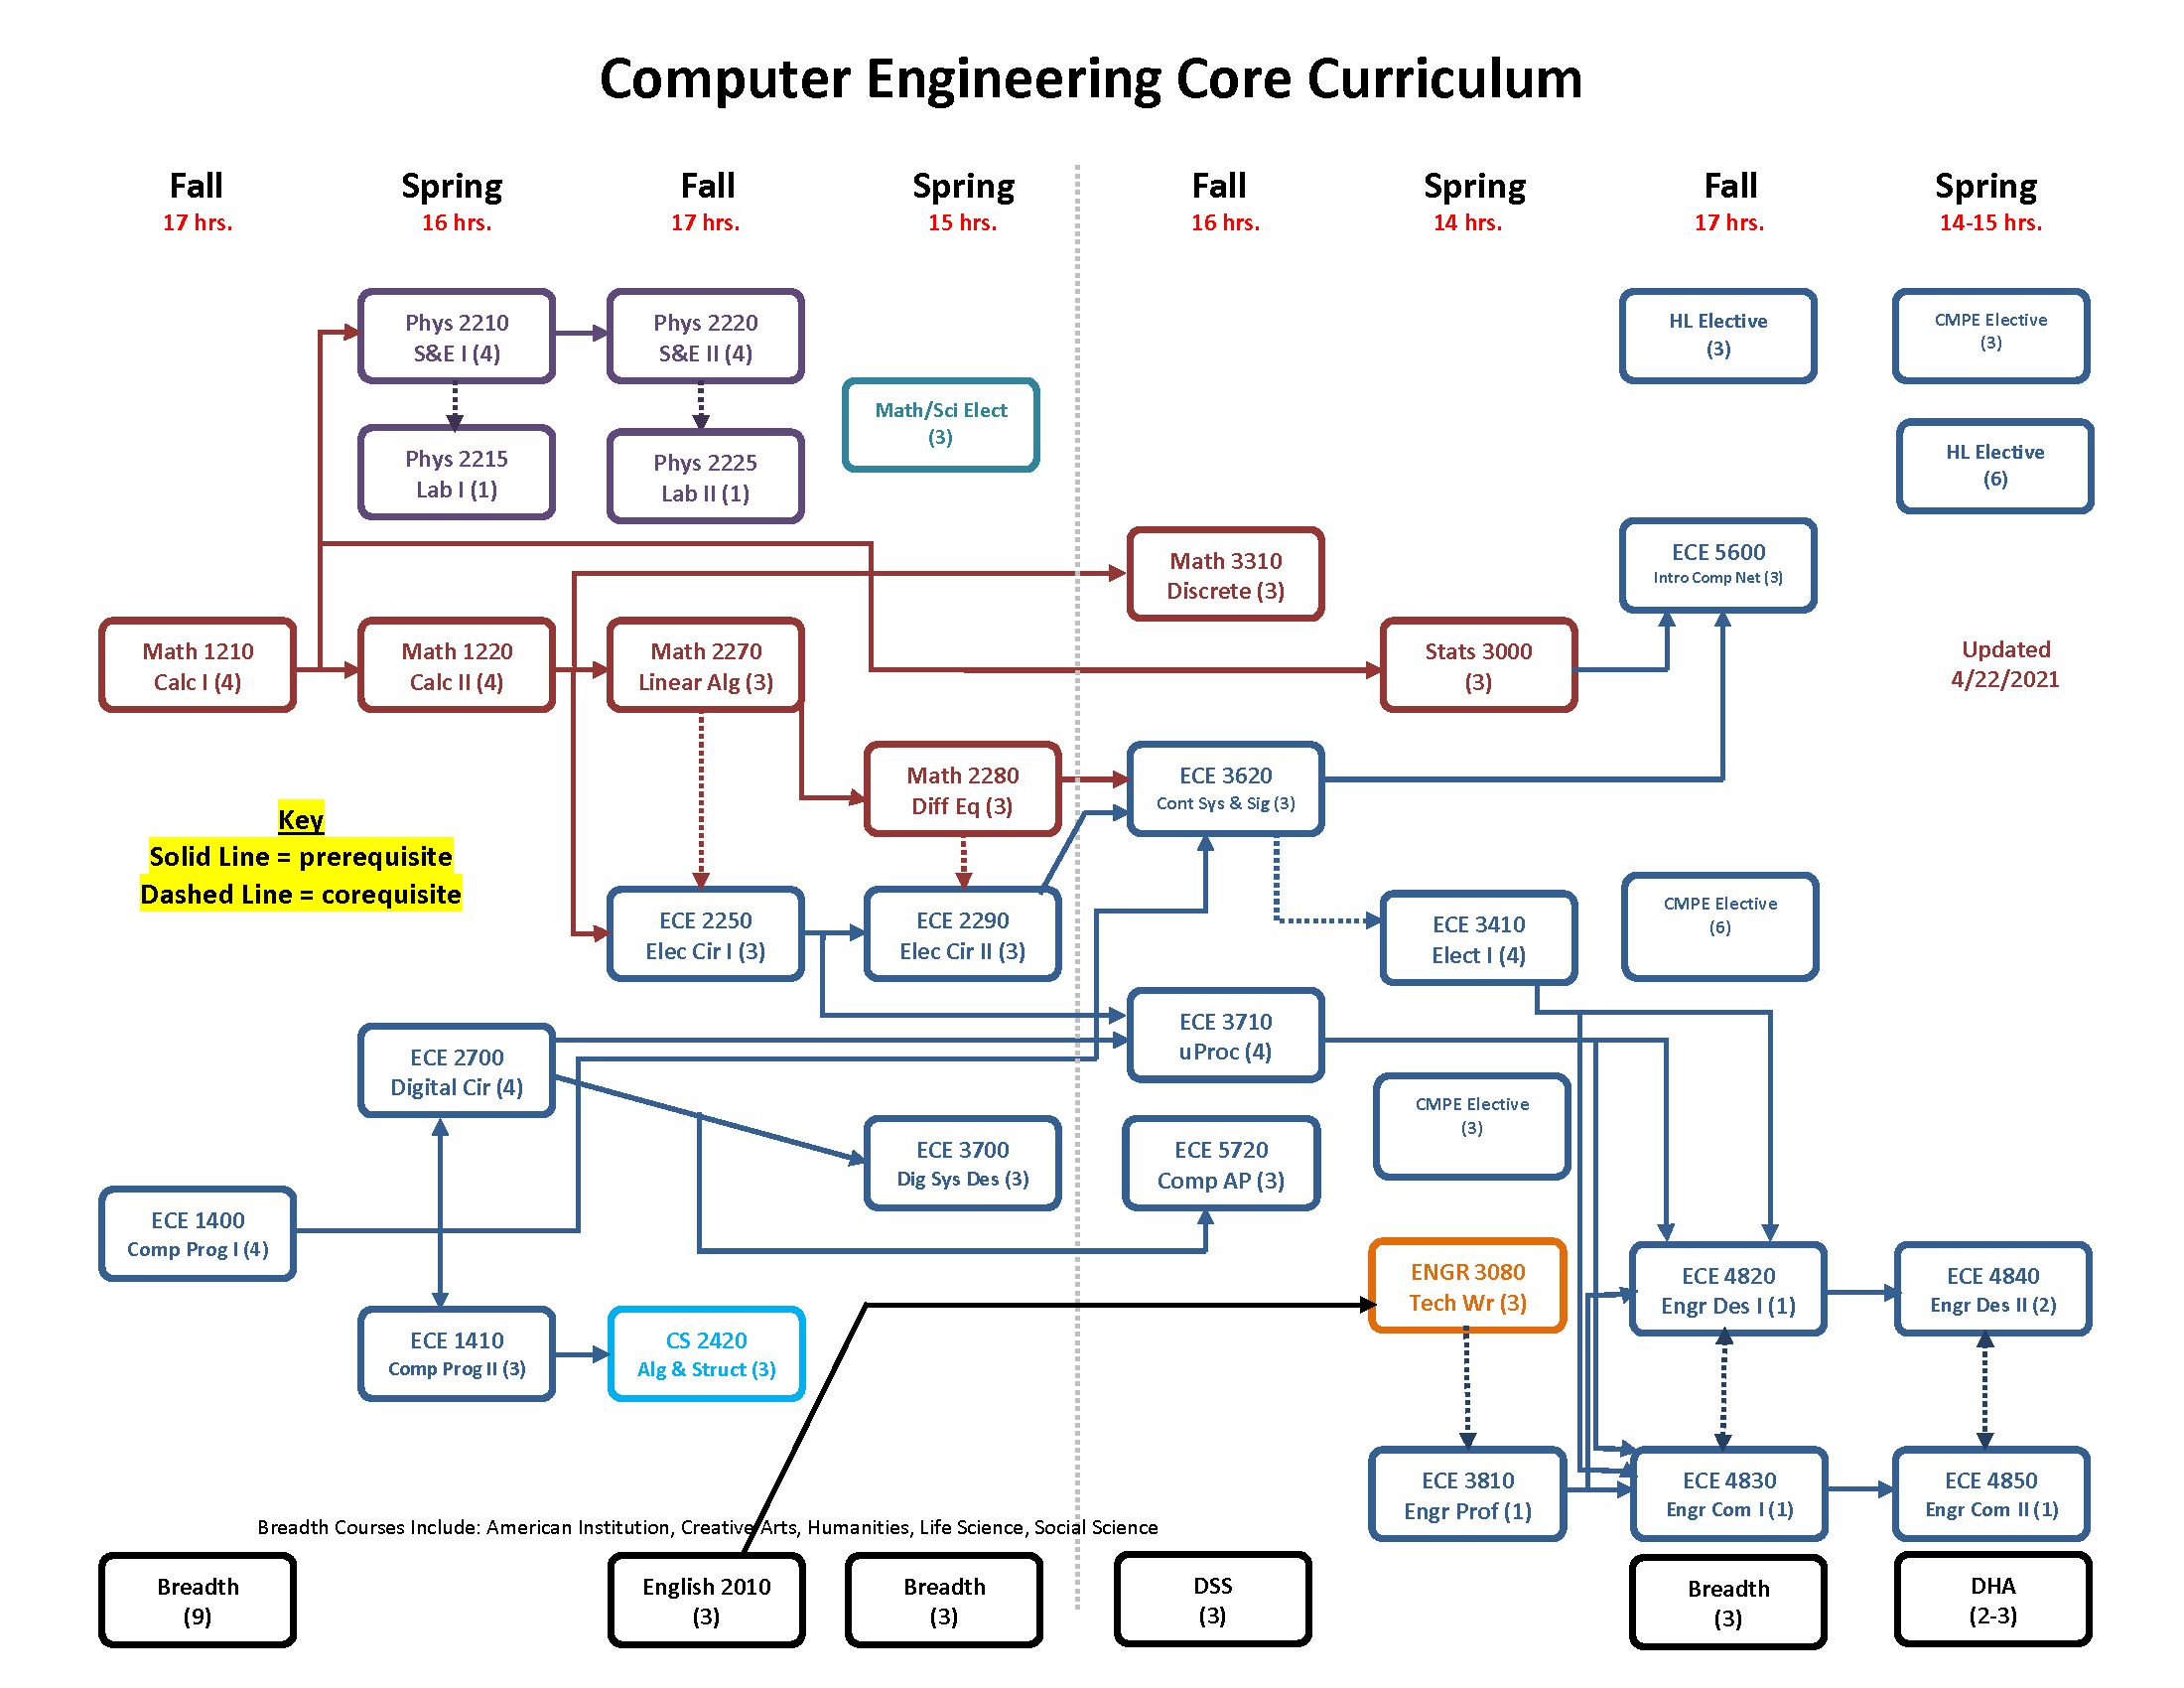 Visual representation of what courses one should take each year in the Computer Engineering Program